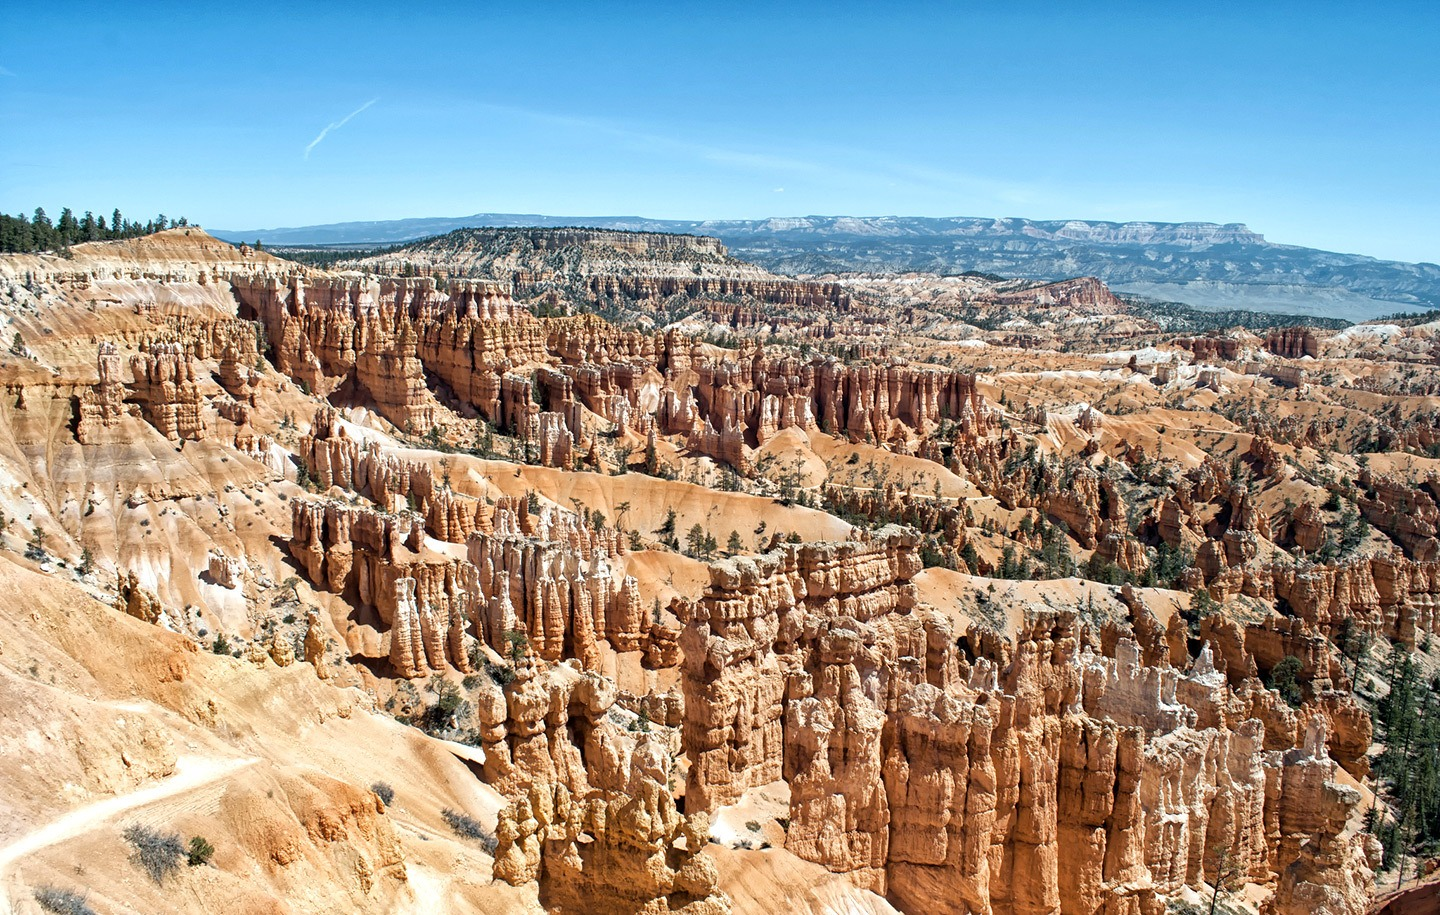 The Rim Trail at Bryce Canyon National Park, Utah